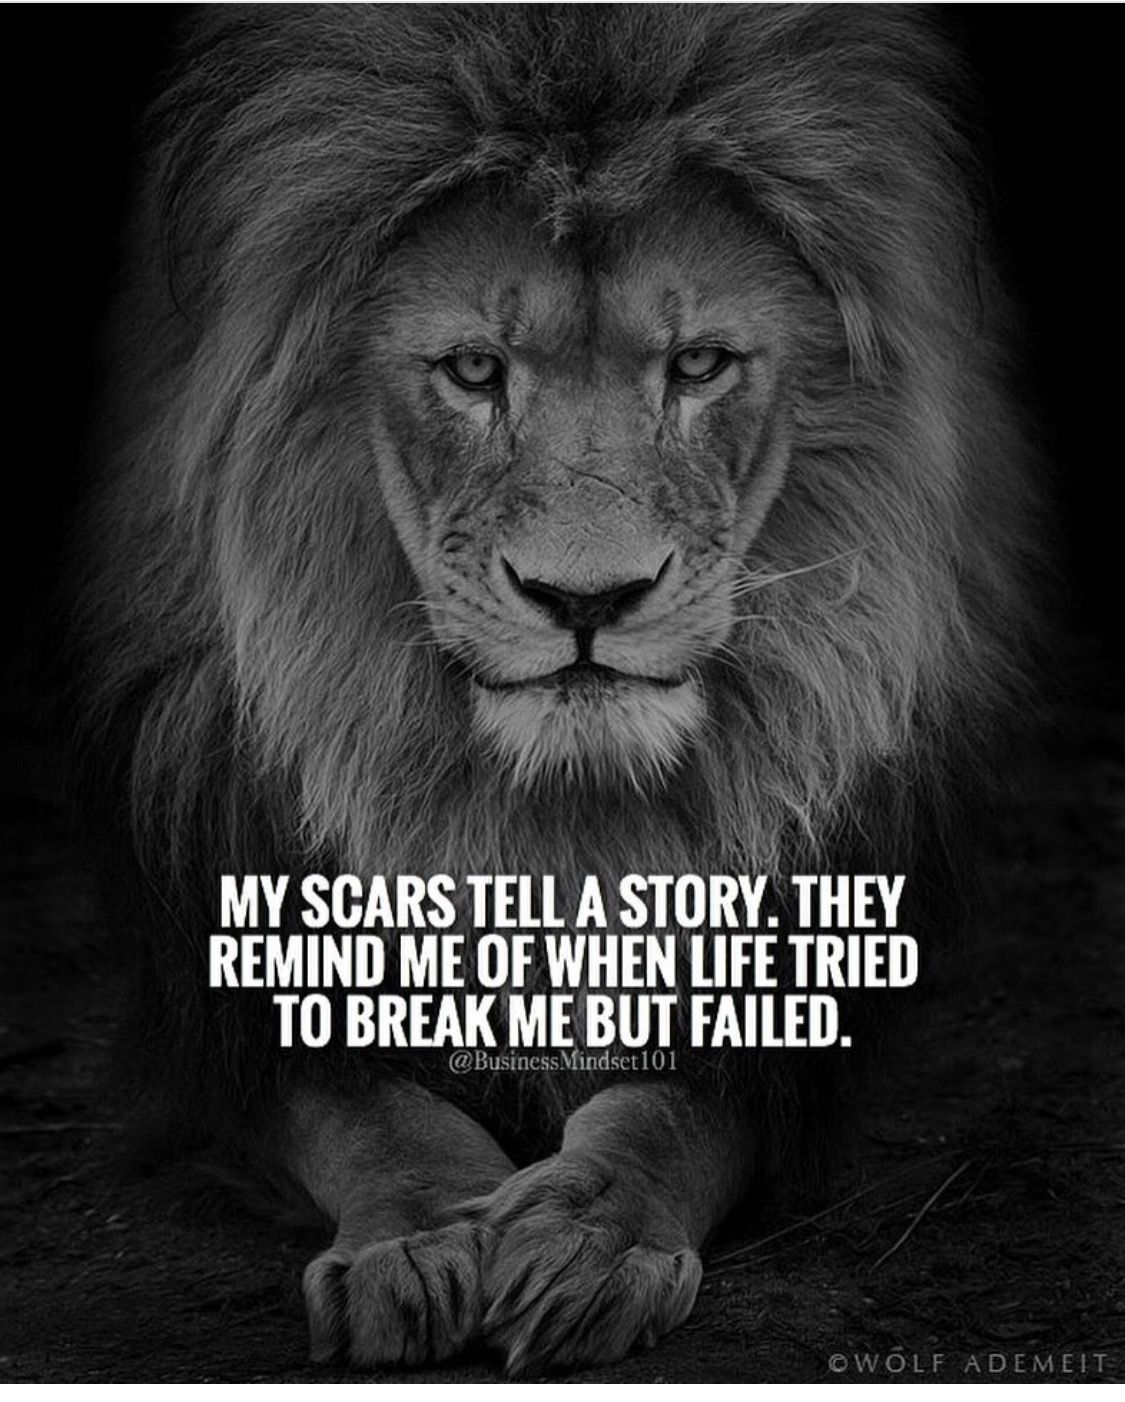 Motivational Quotes With Lion Images: Pin By Keith Moore On Finding Inspiration